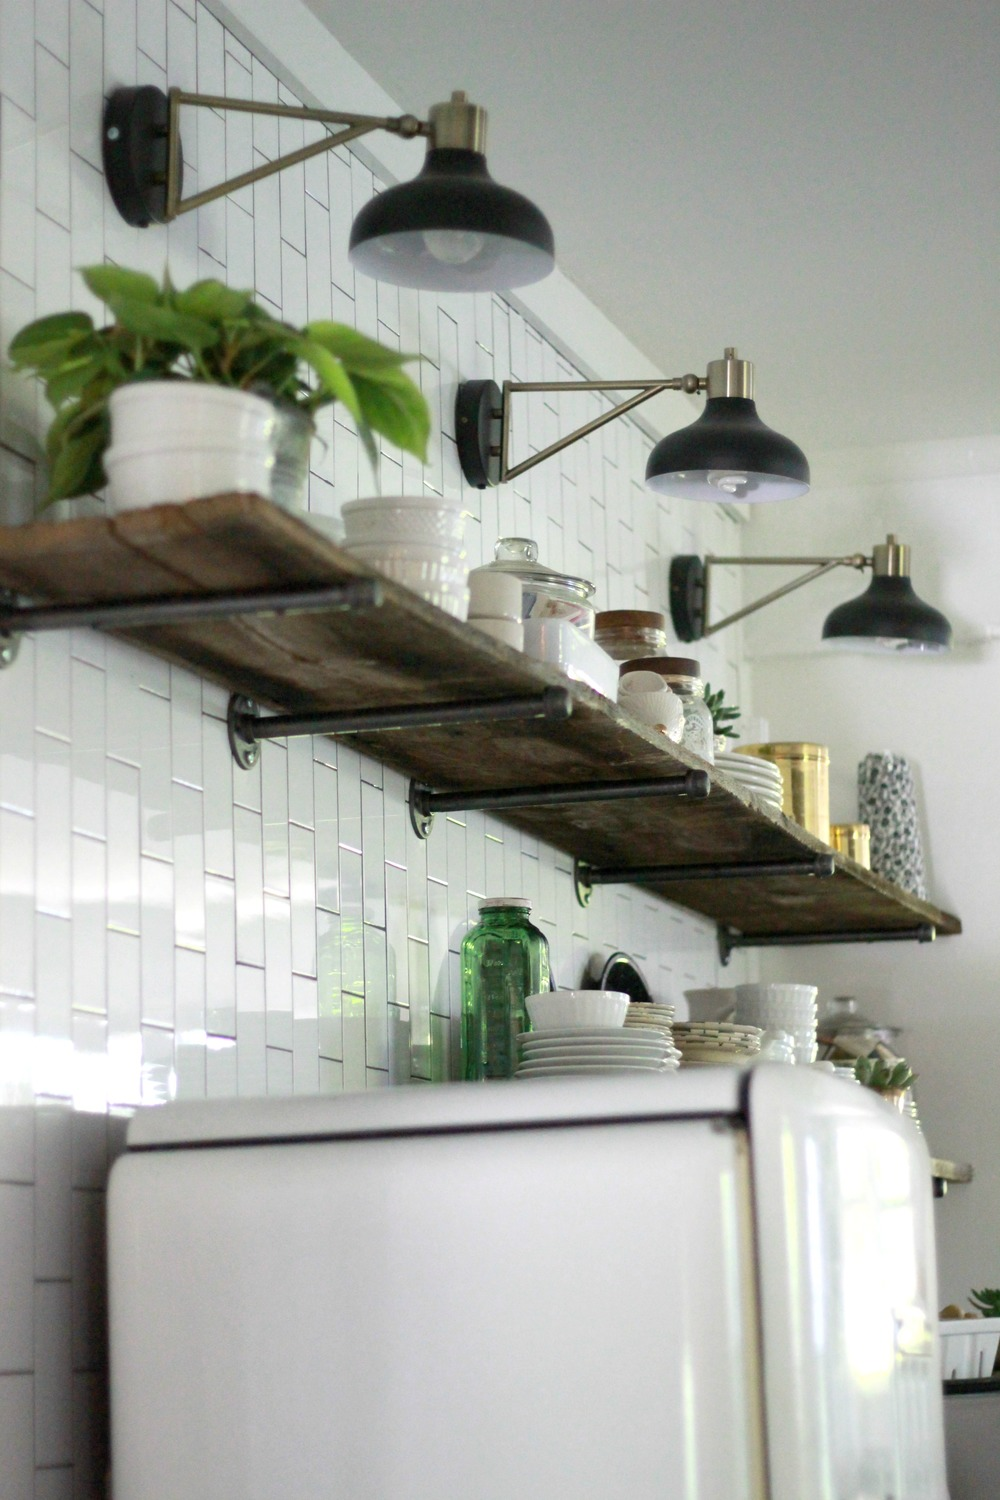 Fixer upper kitchen shelves - One Of My Favorite Focal Points Of The Room Is This Subway Tile Open Shelving Wall This Wall Holds My Beloved Vintage Refrigerator A 25 Garage Sale Find